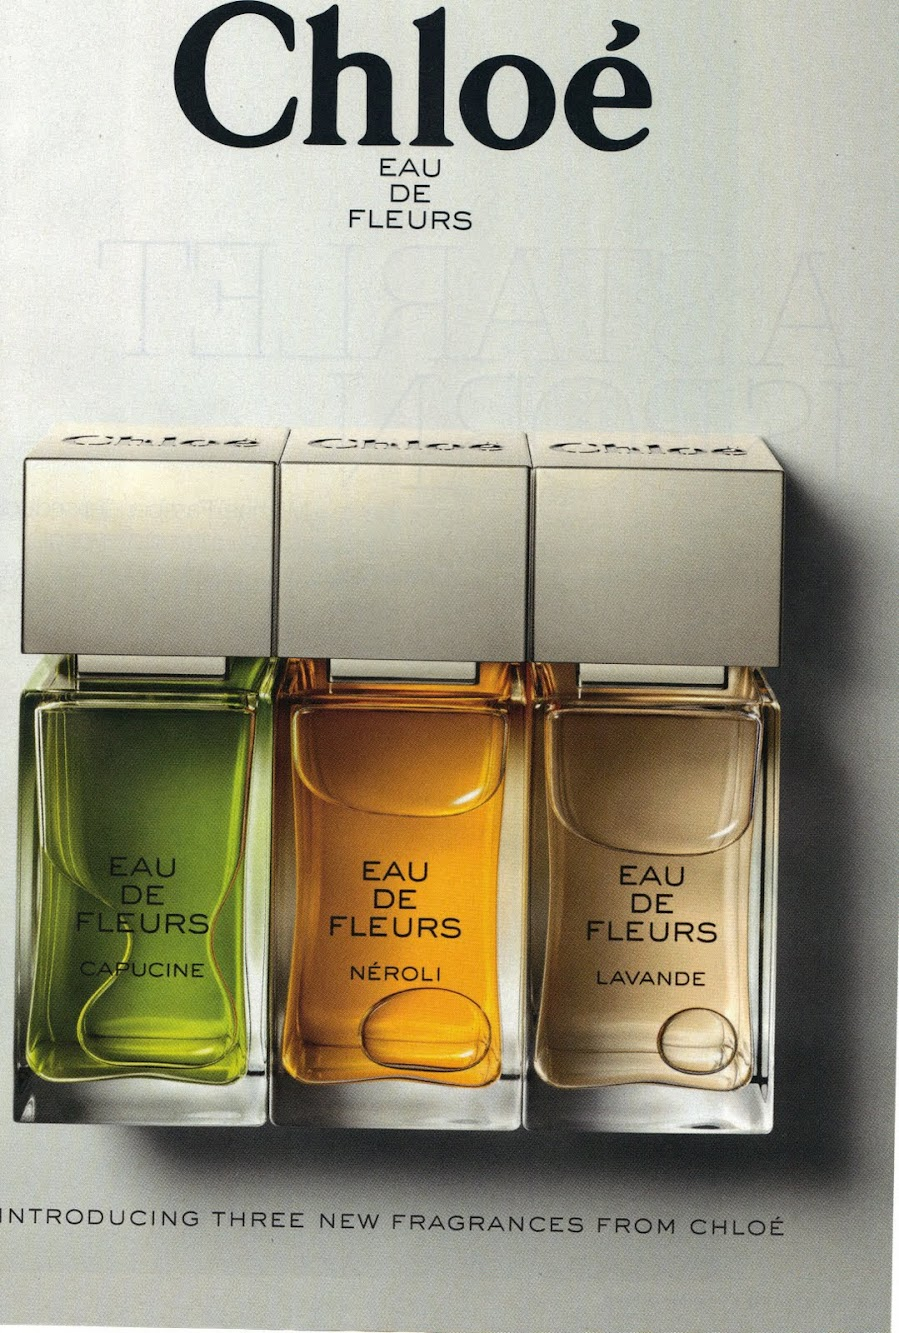 Chloe Eau de Fleurs [Simple and Stylish Advertising]